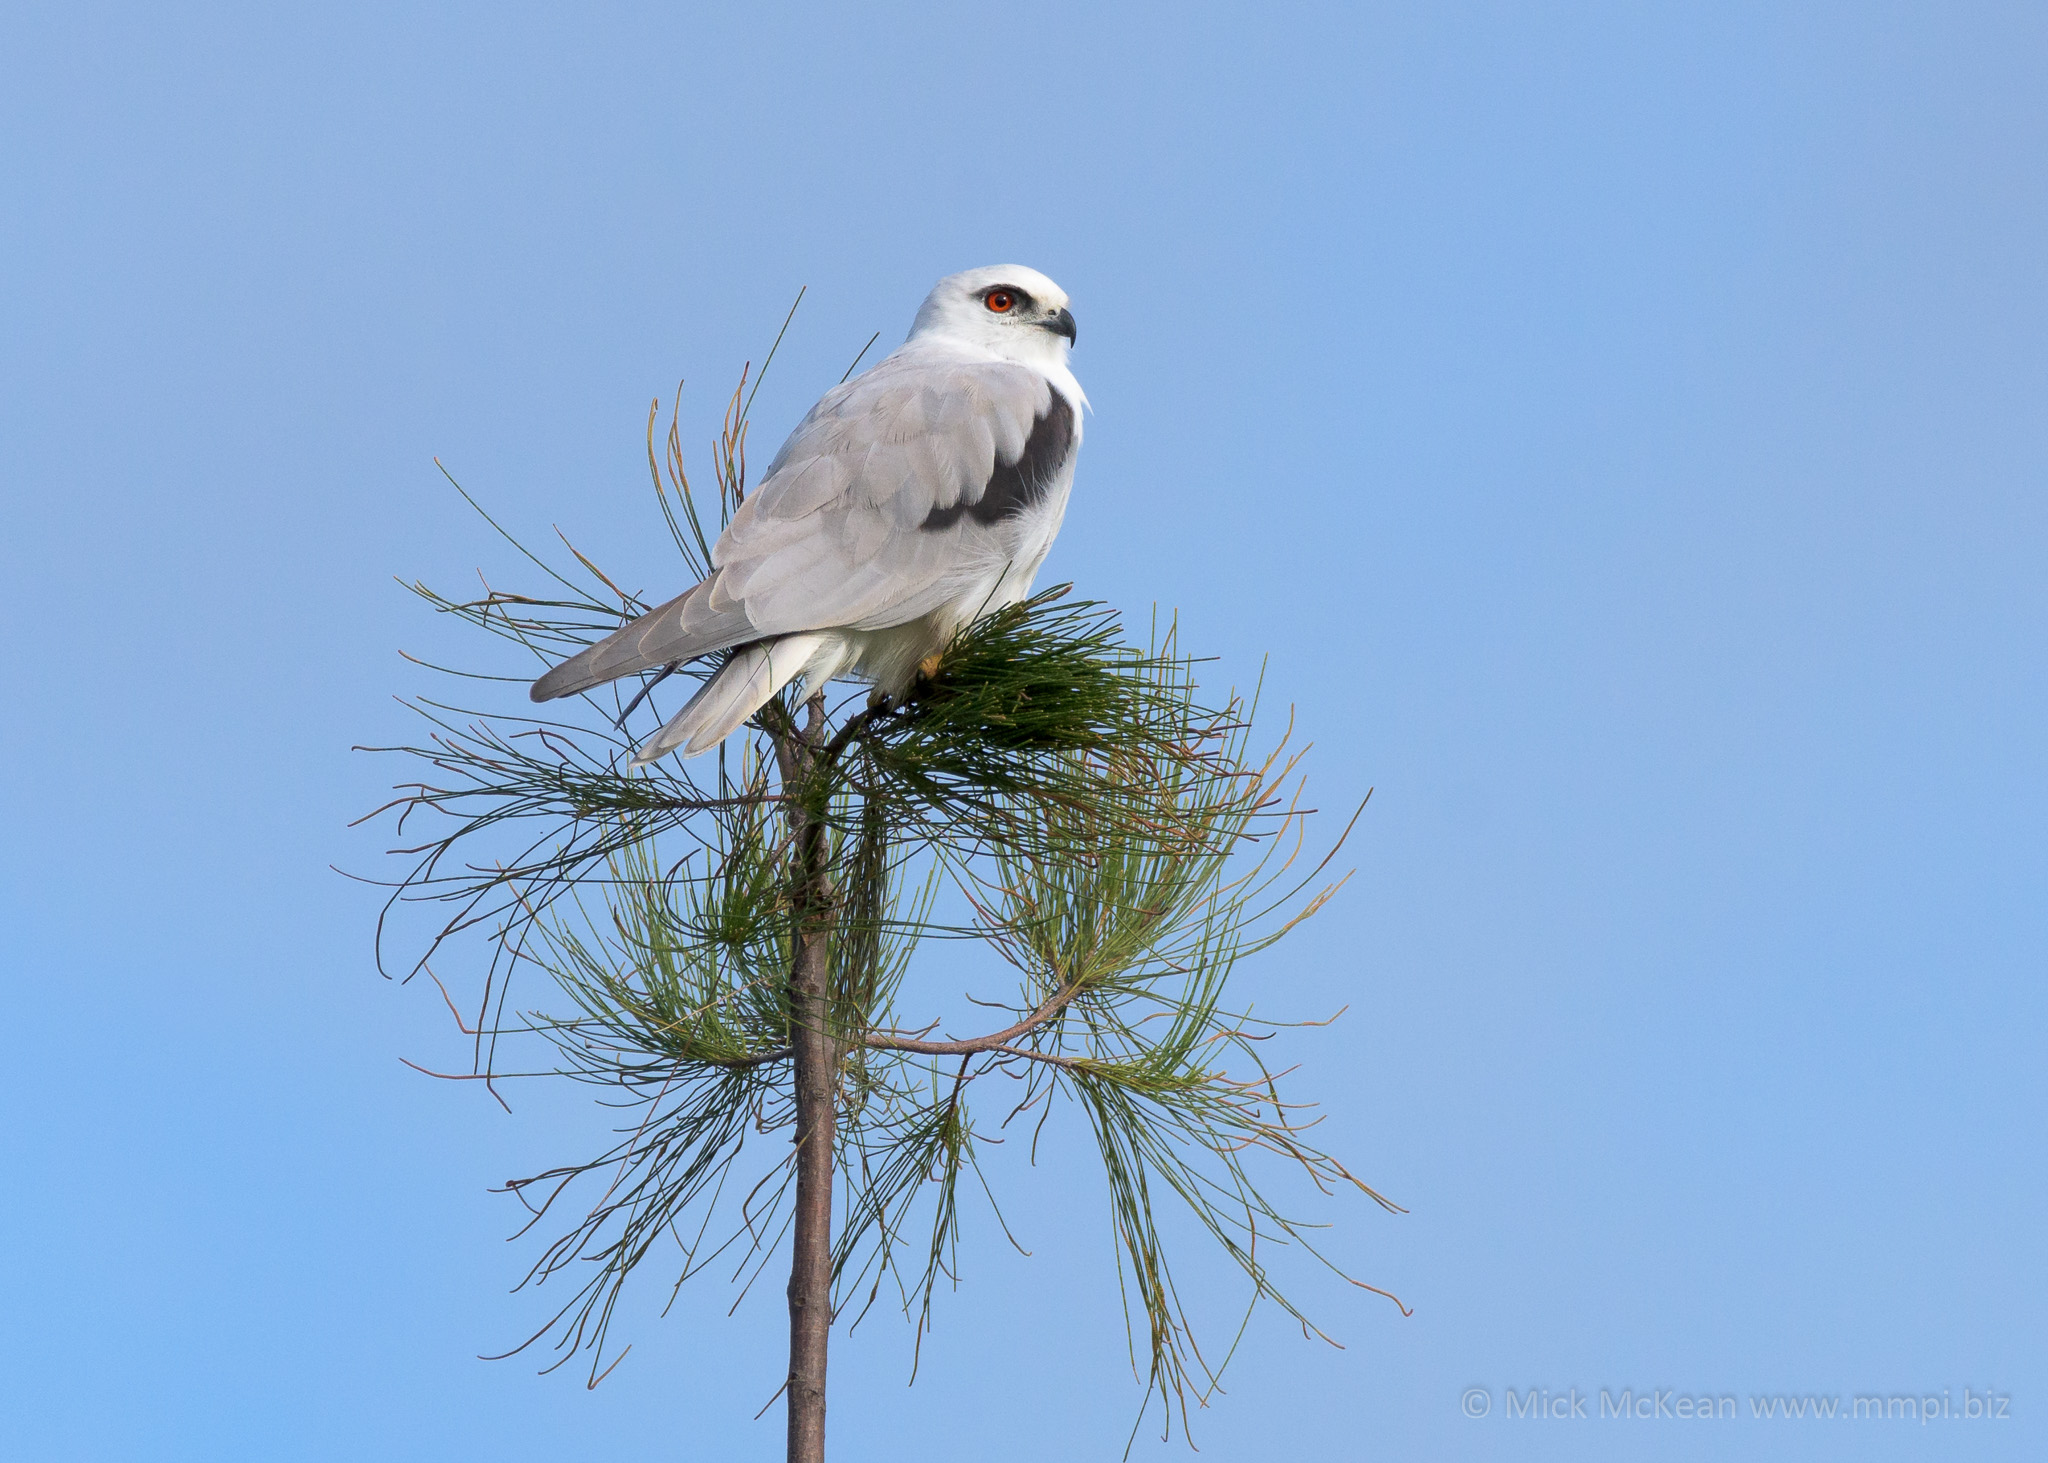 Black-Shouldered Kite in a Tree